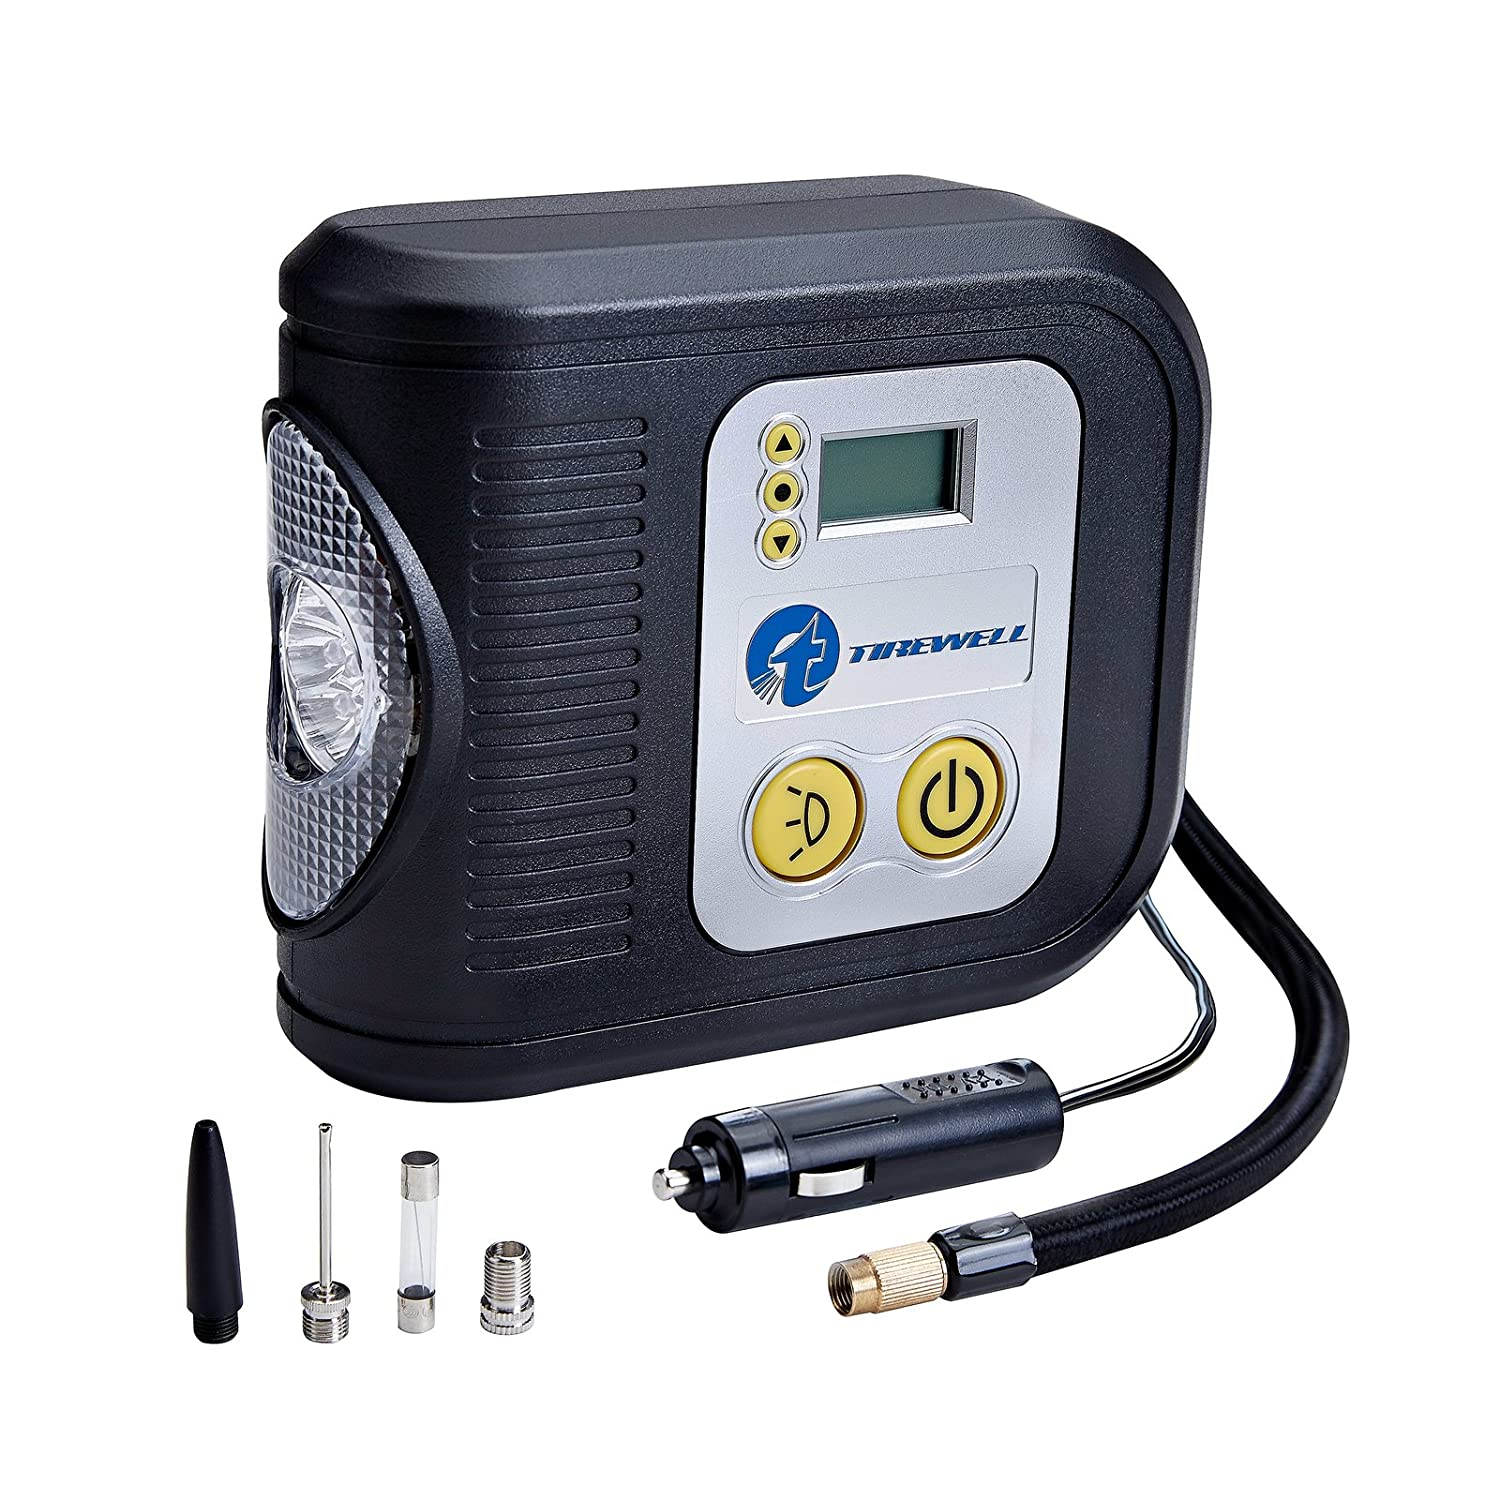 TIREWELL 12V Tire Inflator, Digital Portable Air Compressor, Auto Shut Off Tire Pump with LED Light and 3 Nozzles JF 48